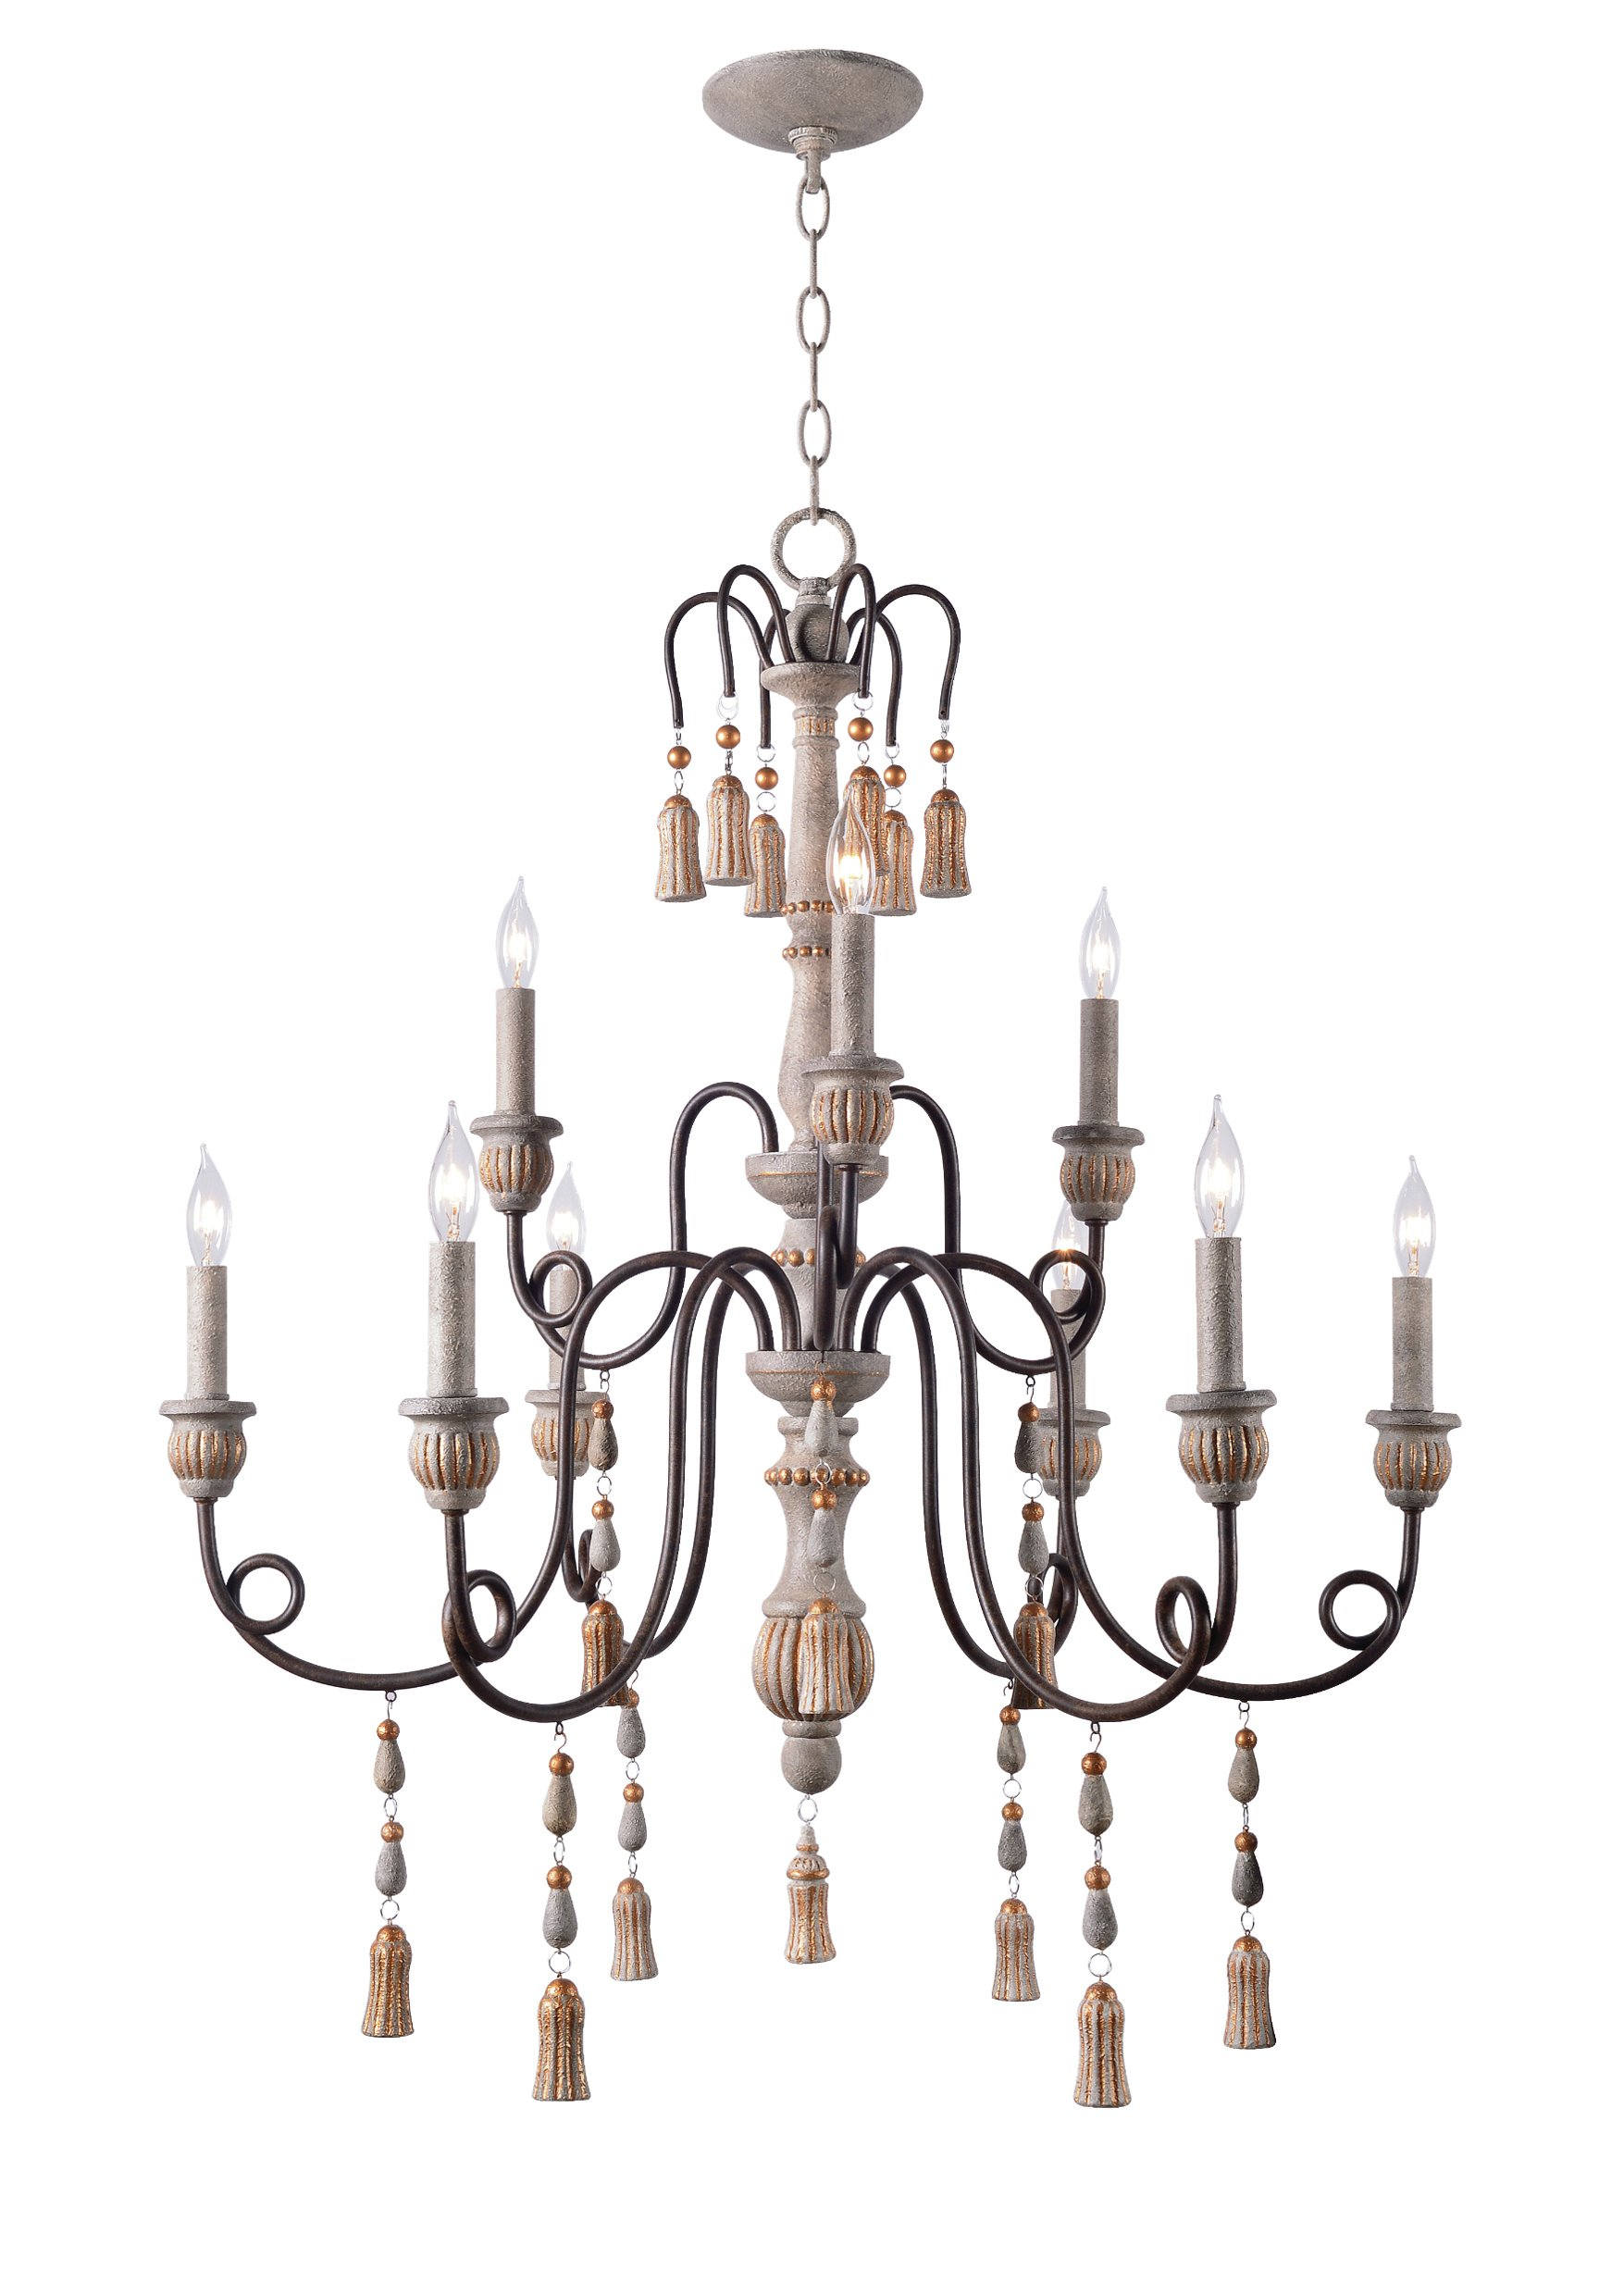 Hassan 9-Light Candle Style Chandelier intended for Corneau 5-Light Chandeliers (Image 19 of 30)